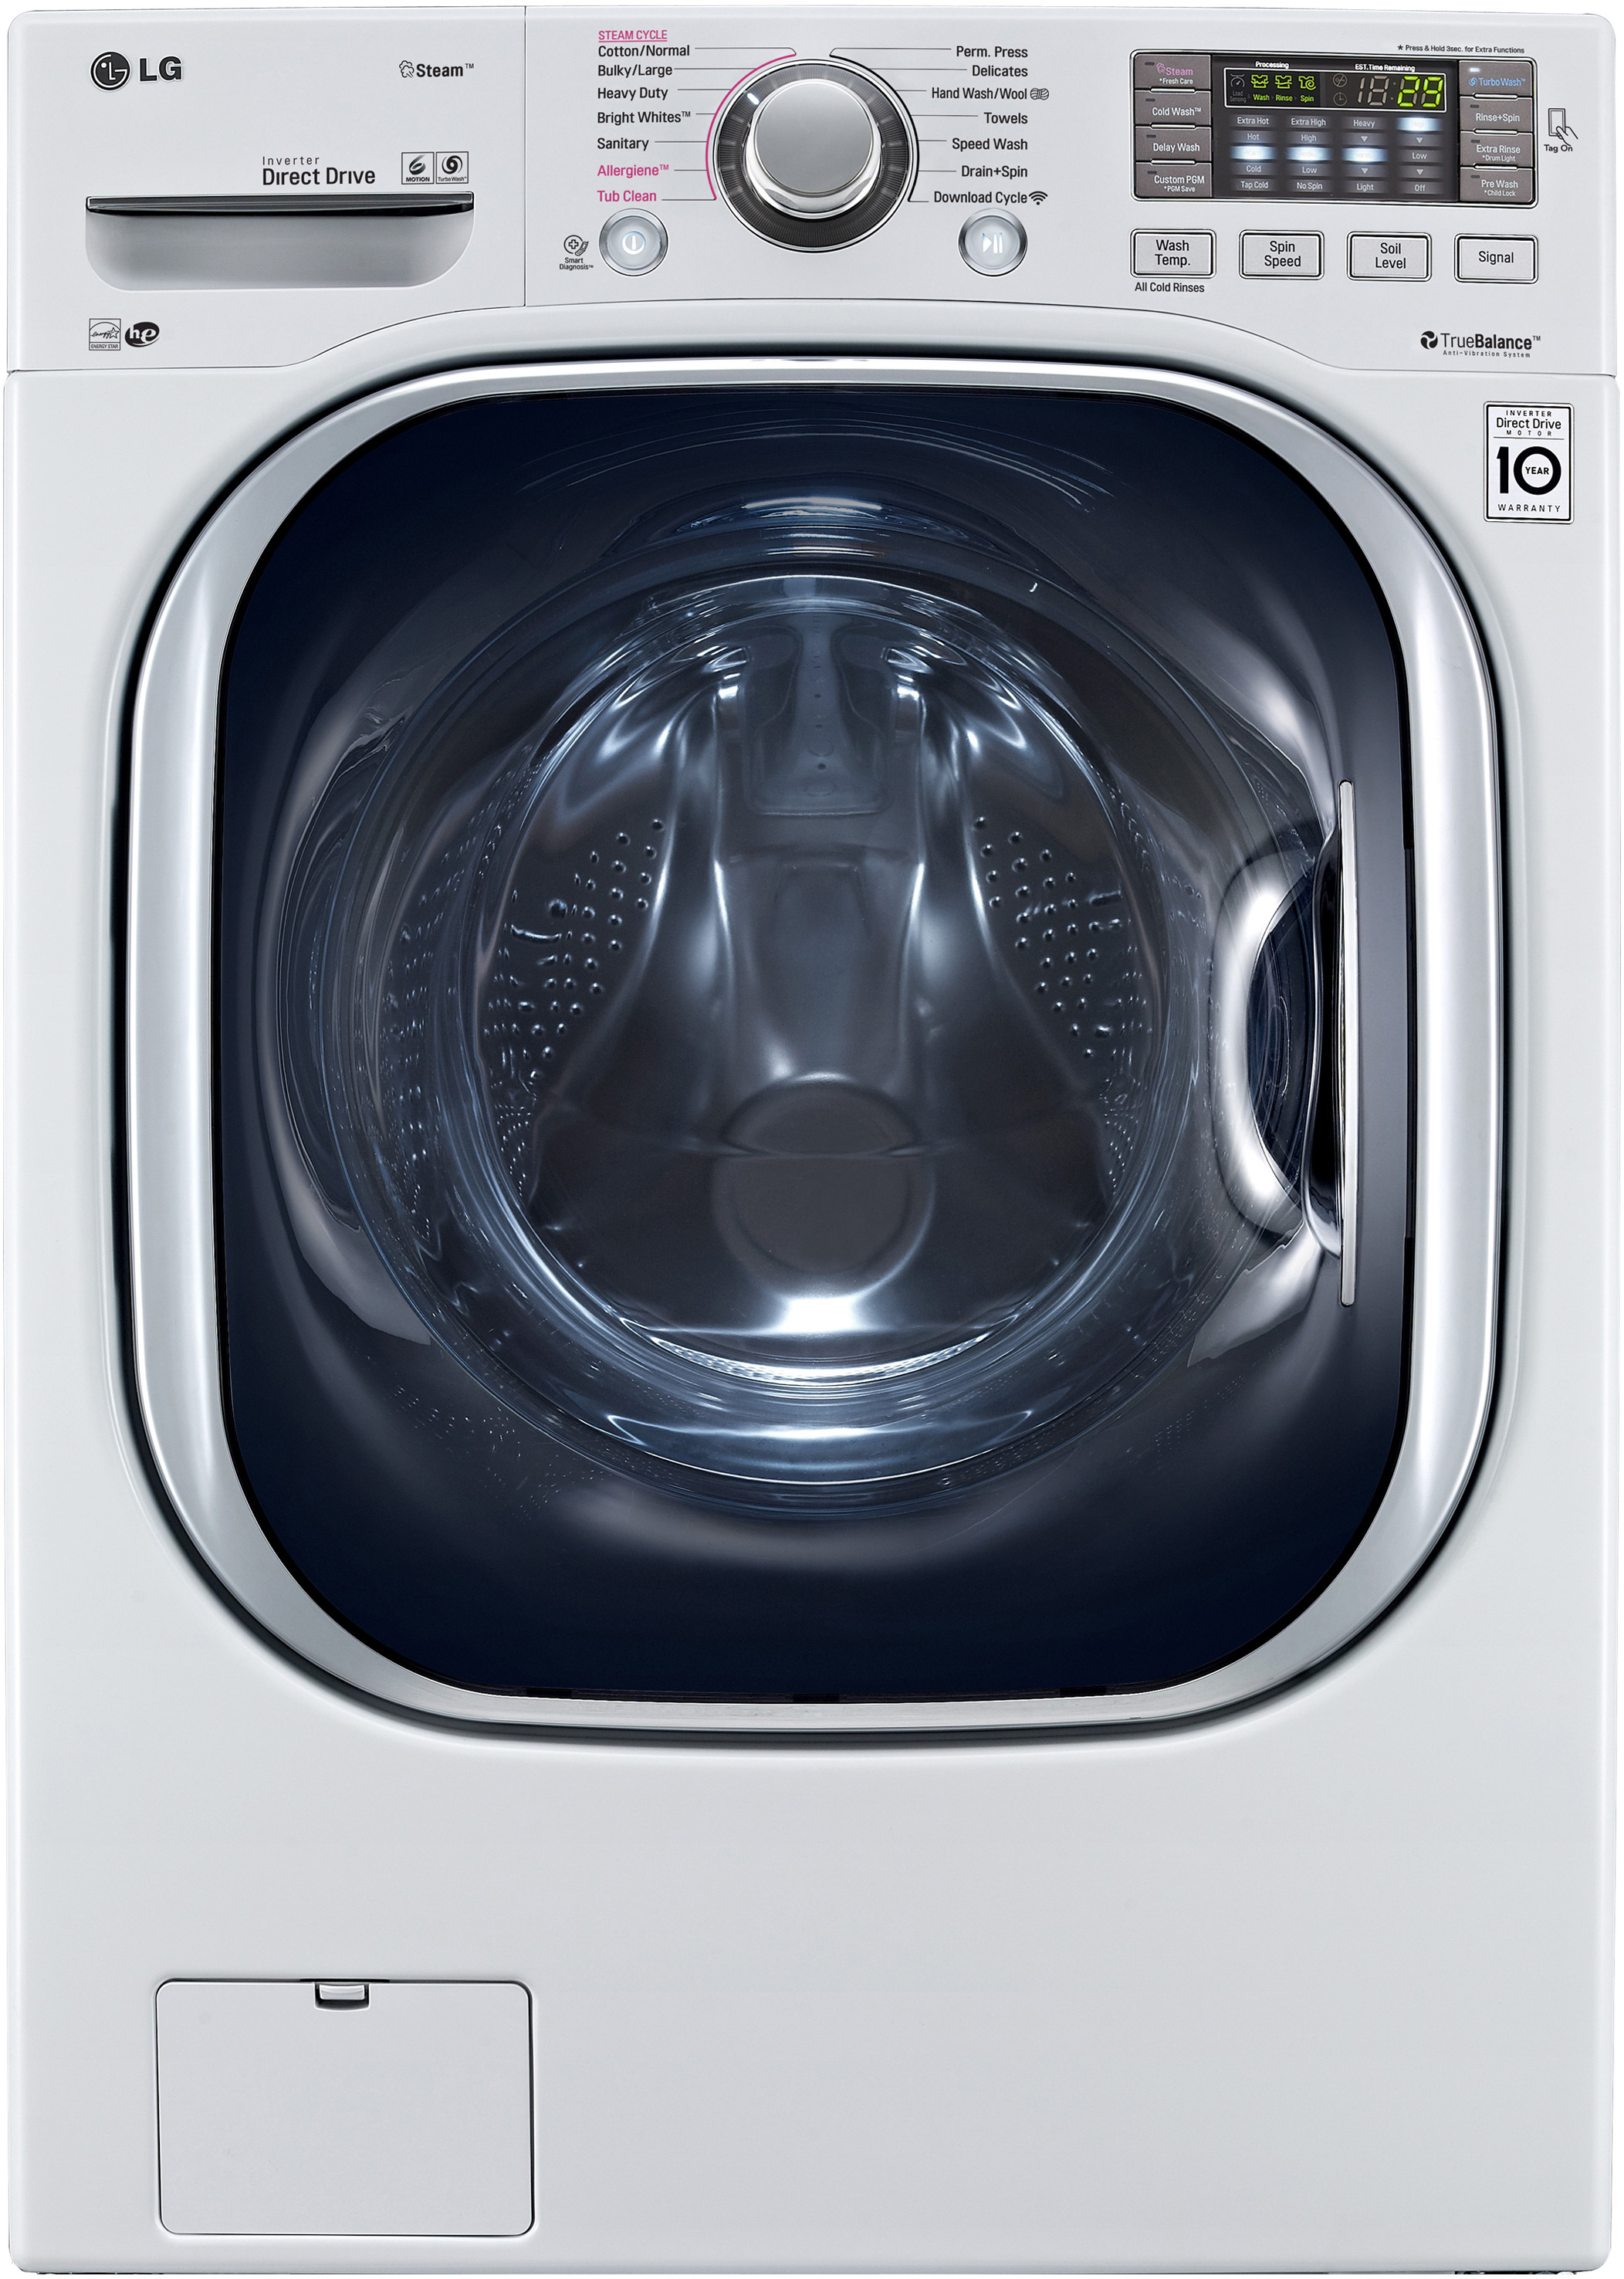 pin cu pedestal pid md jsp sears ft ct from front d whirlpool ps product washer white outlet pn machine details searsoutlet cid duet steam washing load com